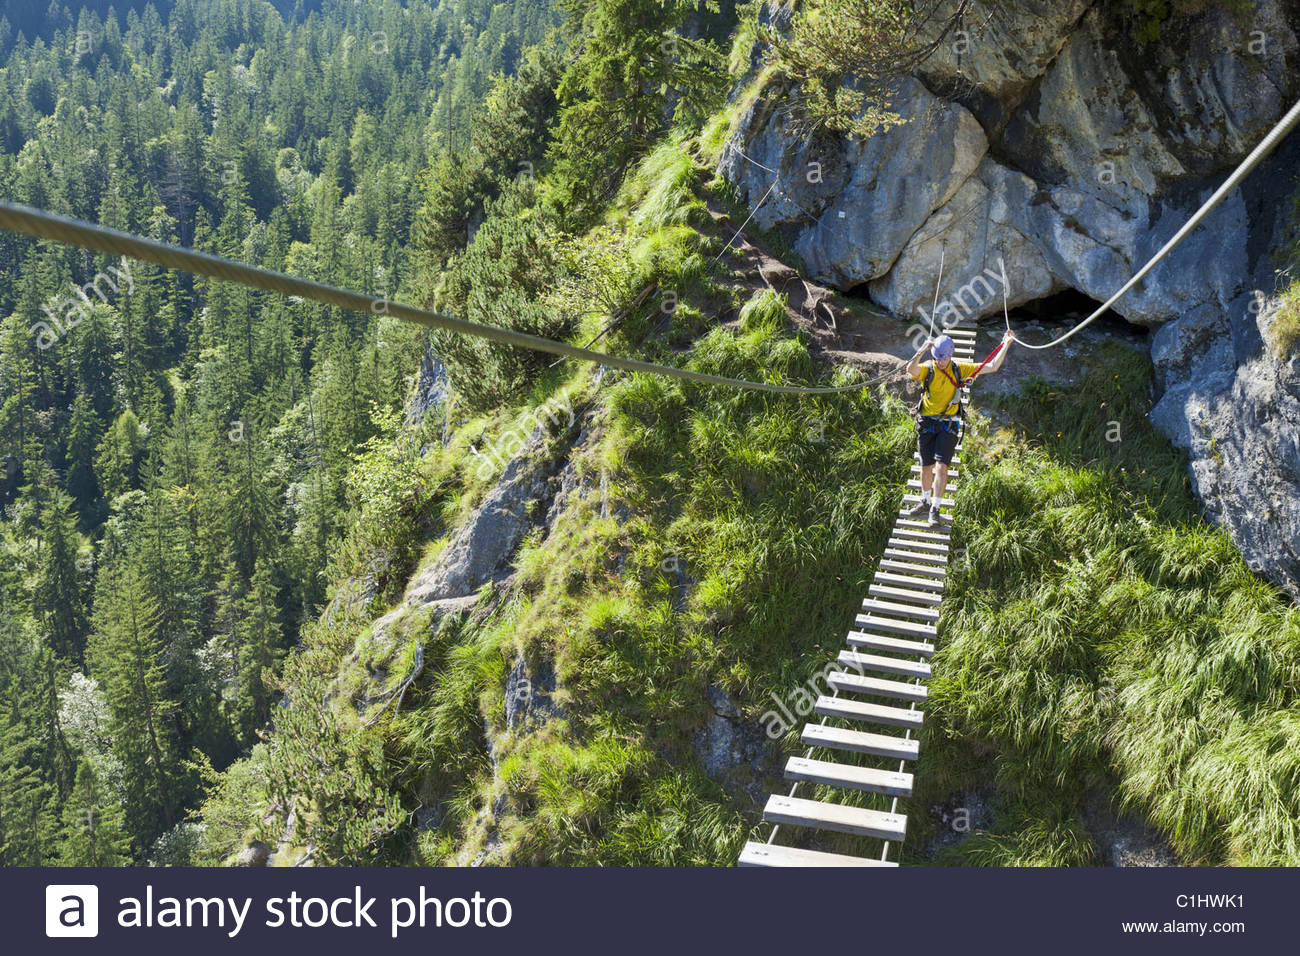 Fixed rope route at Gruenstein, Berchtesgaden Alps, Bavaria, Germany, Europe - Stock Image